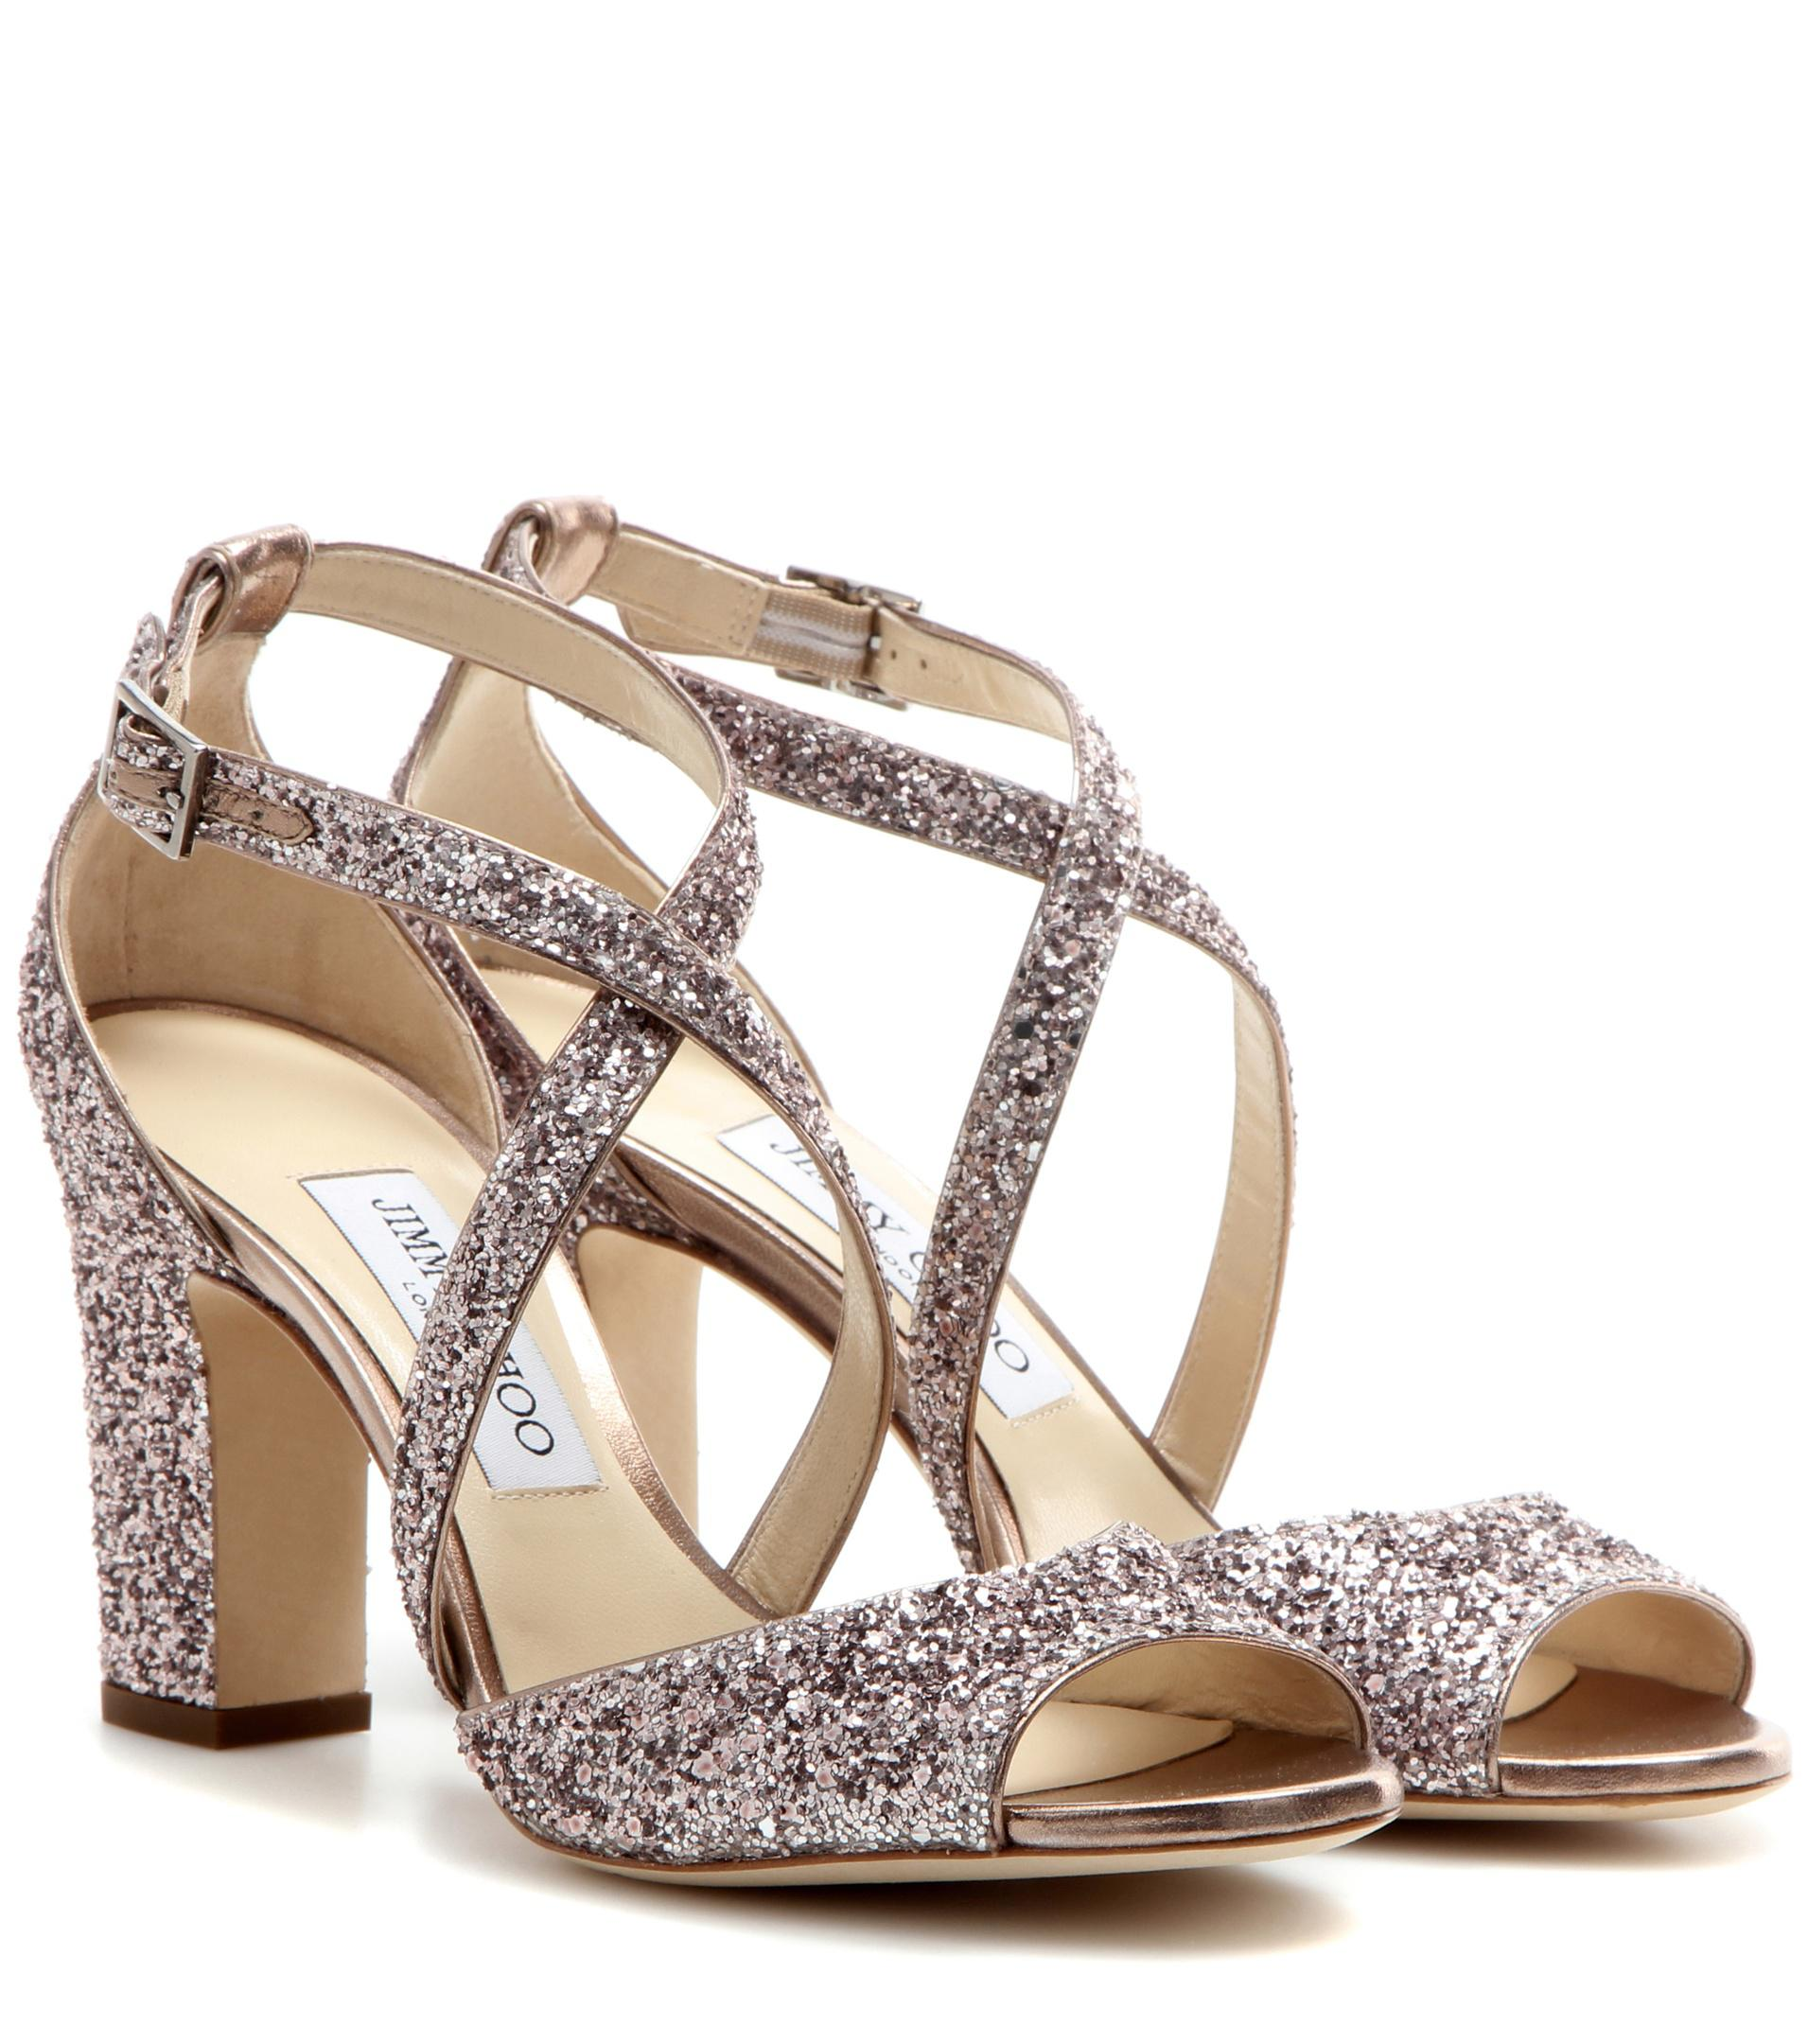 60c609ccc483 Gallery. Previously sold at: Mytheresa · Women's Jimmy Choo Glitter Shoes